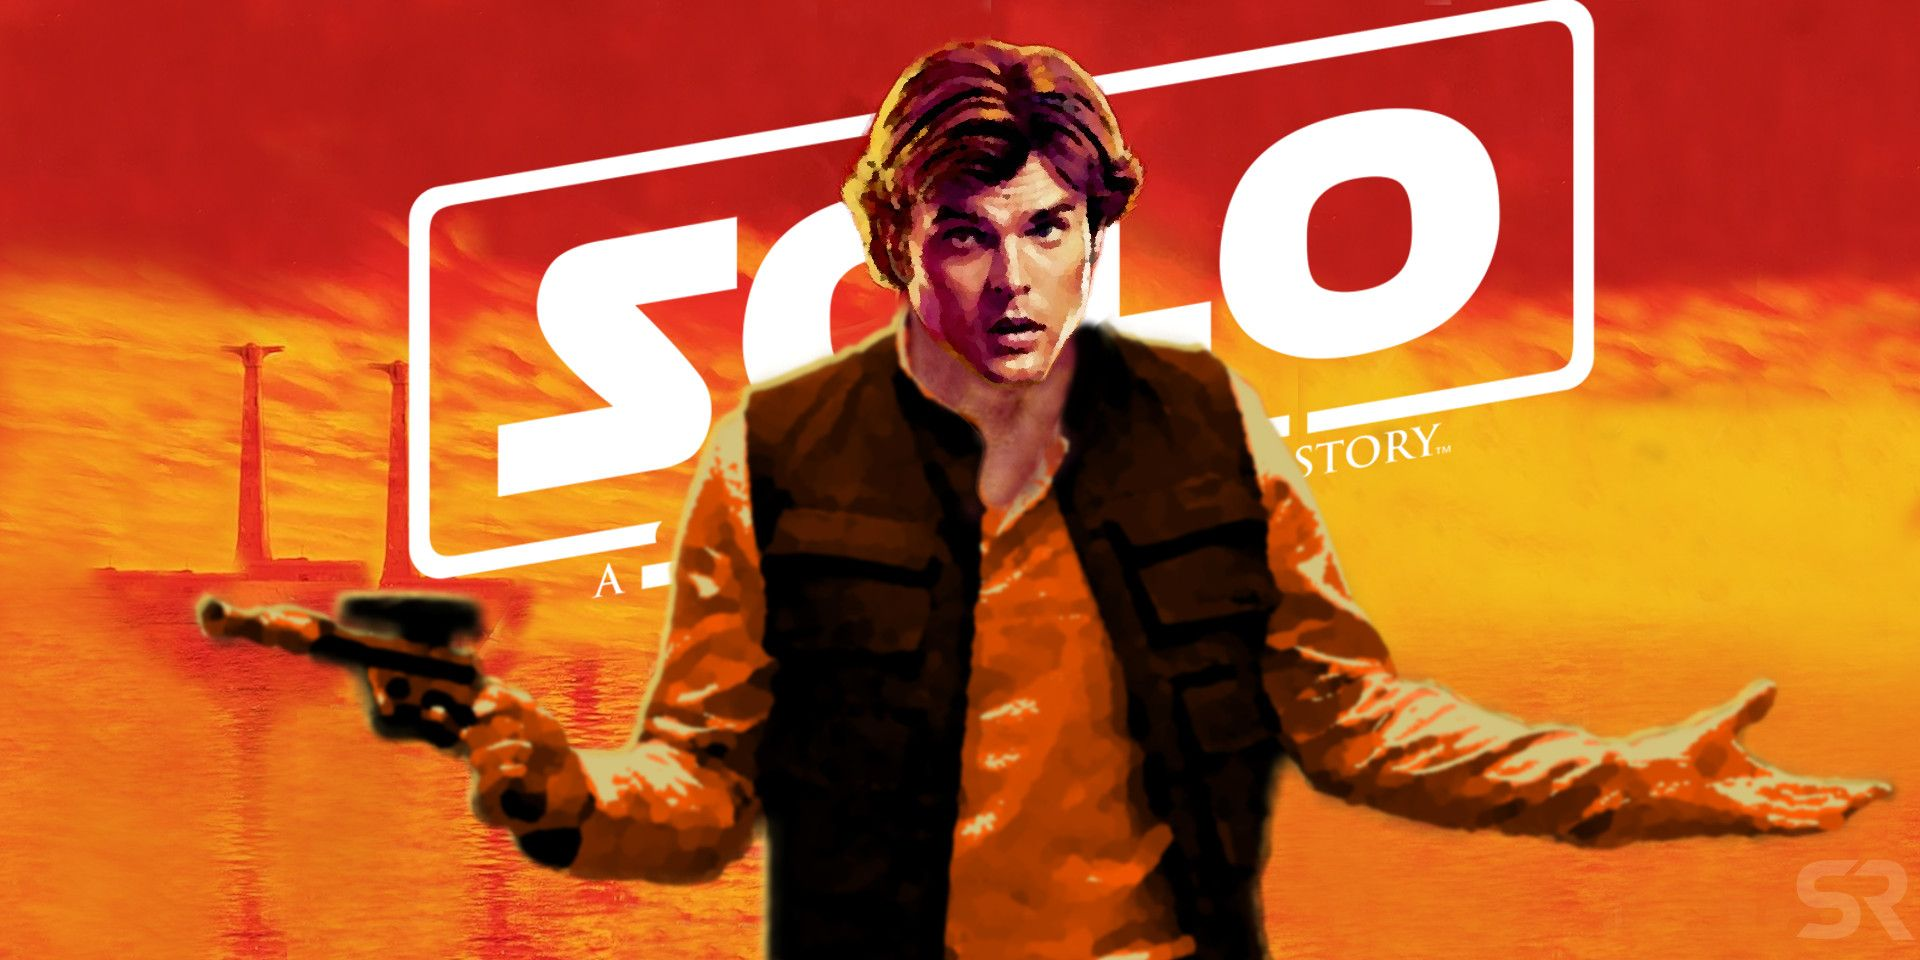 SOLO's $100 Million Disappoints at Box Office, 5000 Dead in Puerto Rico